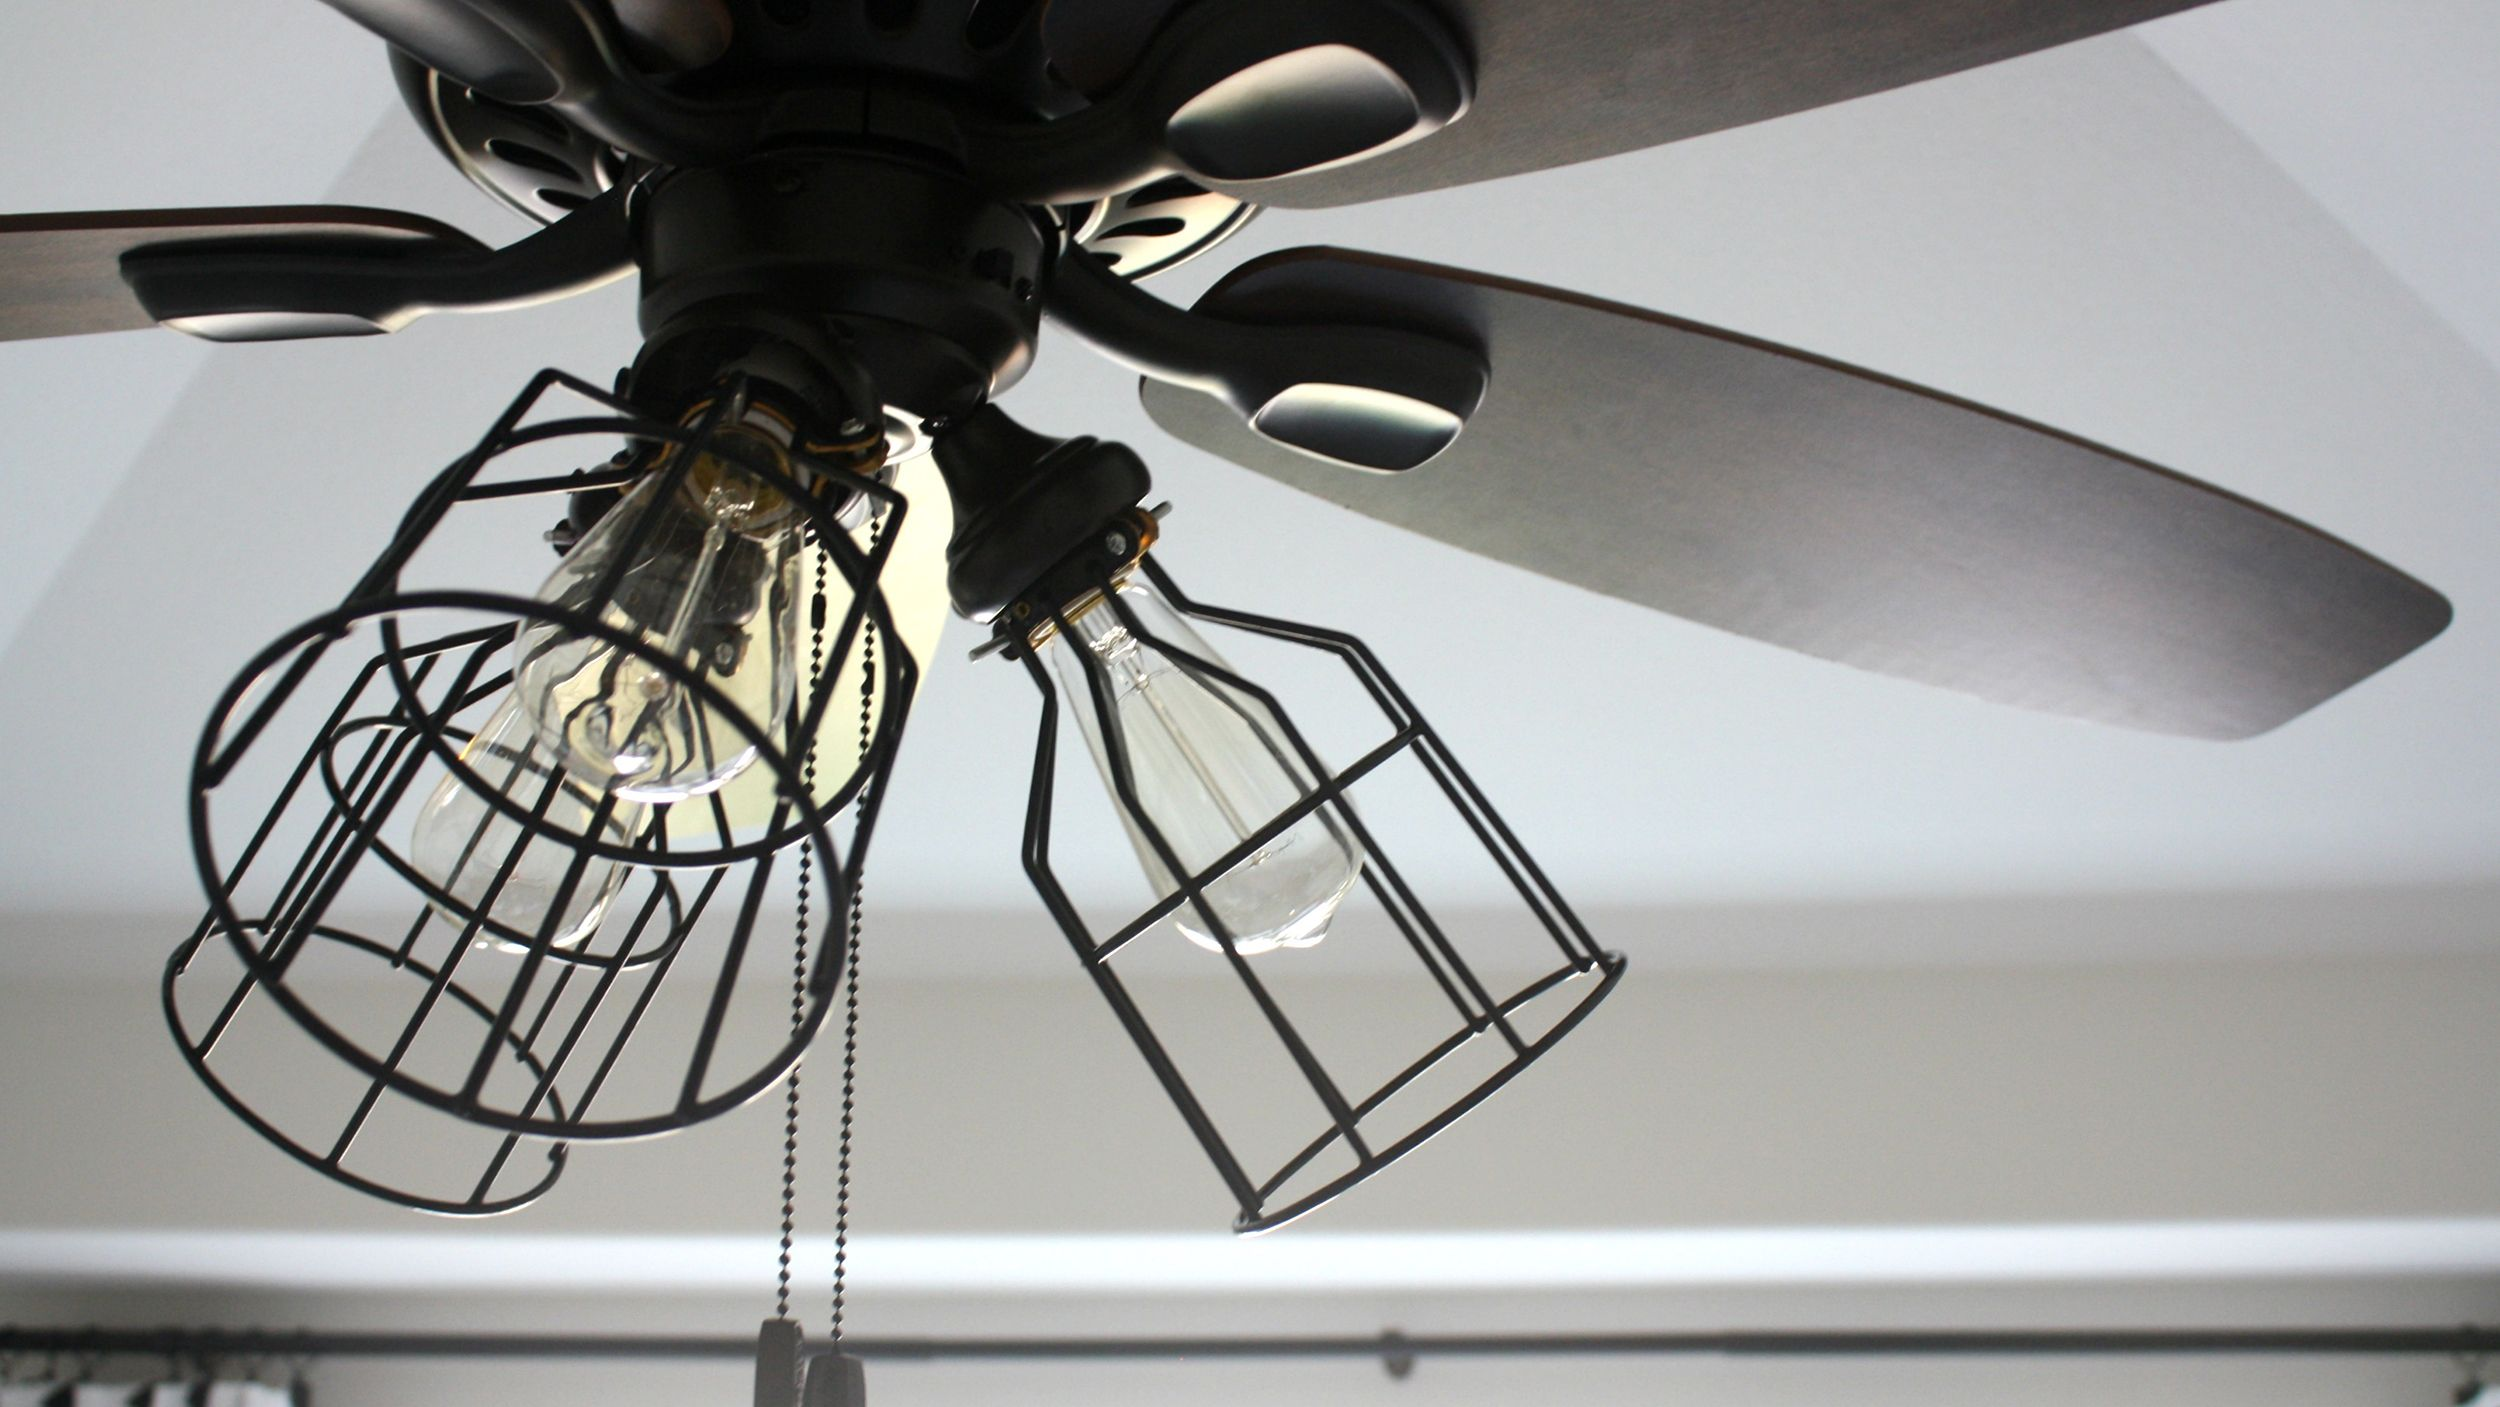 Give Your Ceiling Fan A Makeover With This Diy Ceiling Fan Light Kit Ceiling Fan Makeover Ceiling Fan